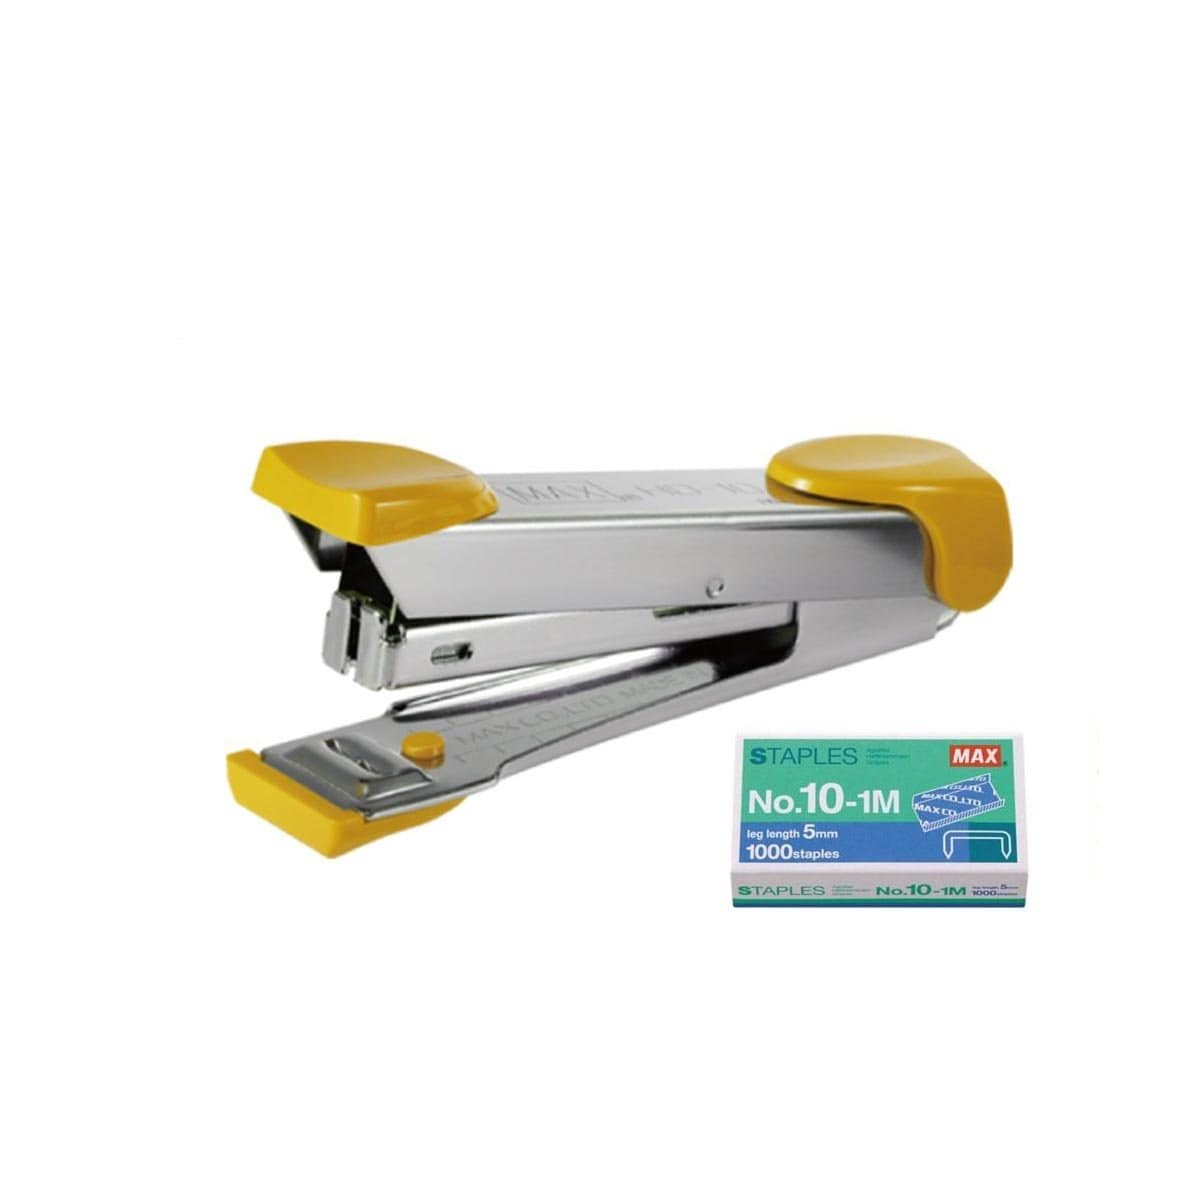 Max Stapler HD-10K Yellow